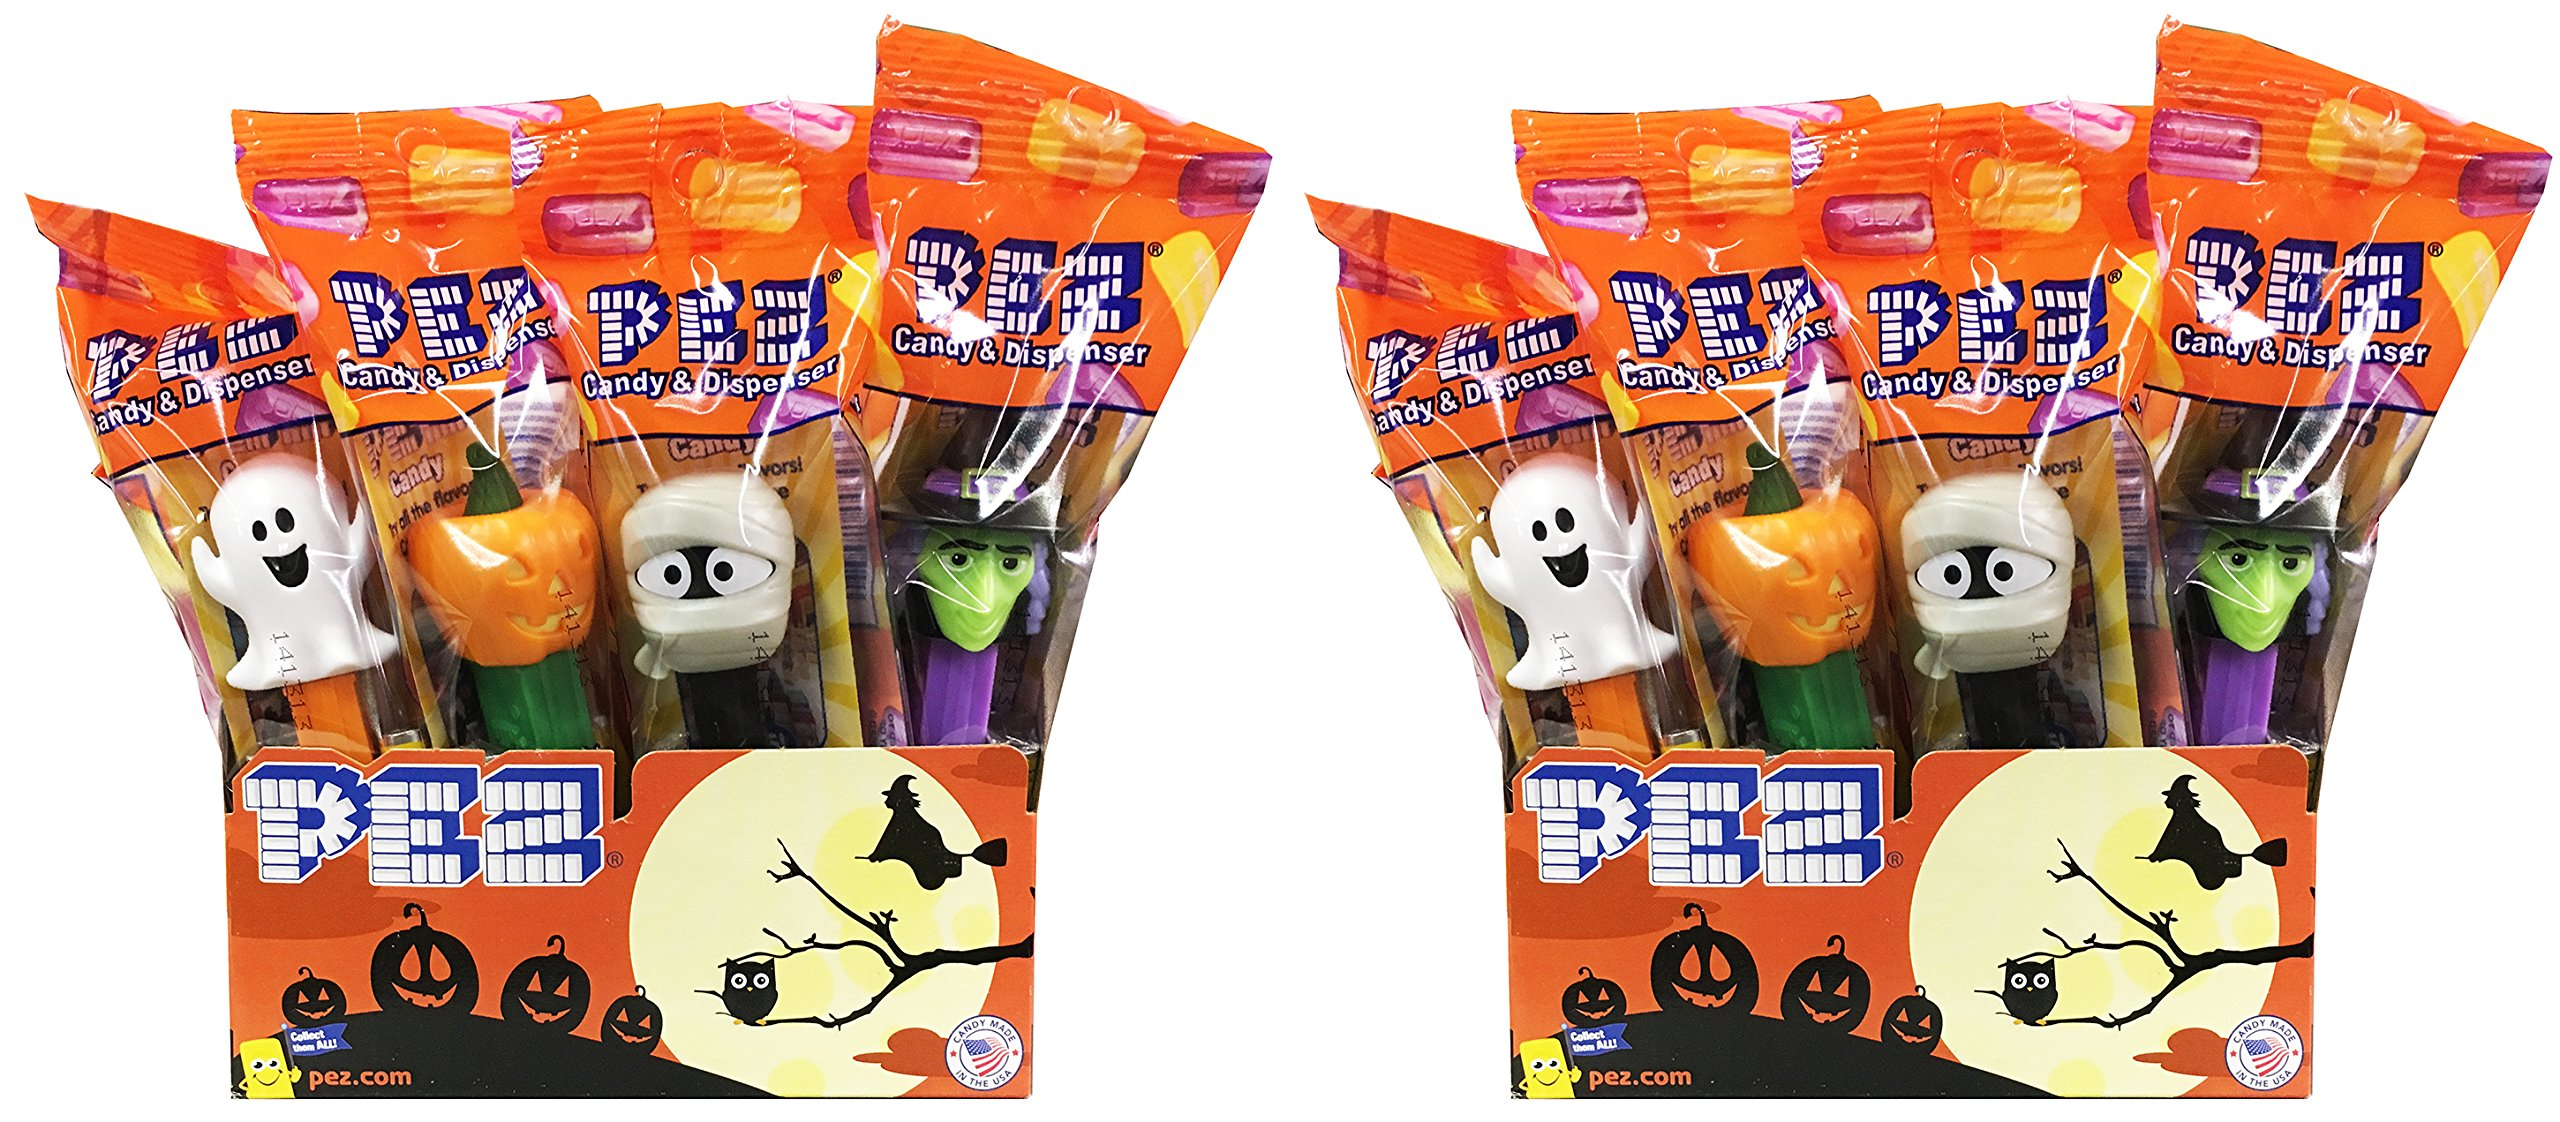 CDM product Halloween Trick or Treat PEZ Candy Dispensers: Pack of 24 small thumbnail image